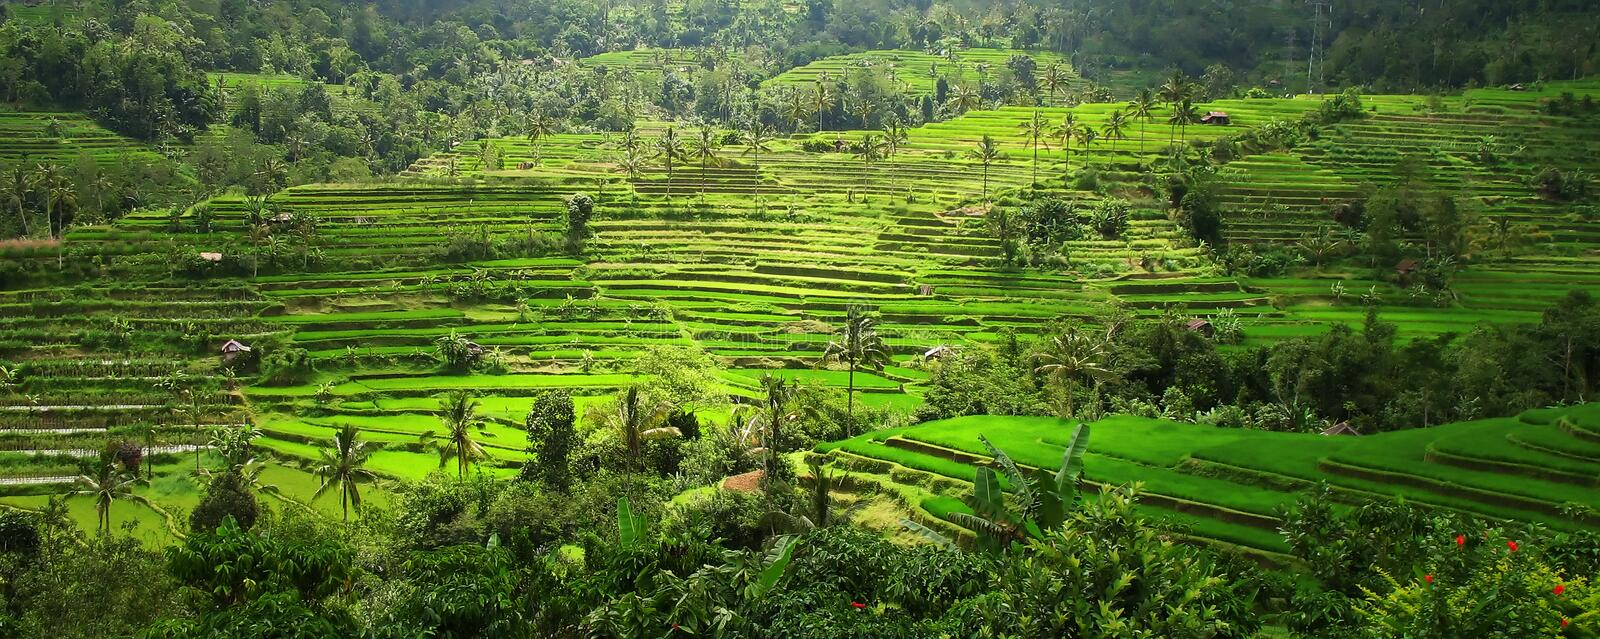 Rice Terraces, Bali, Indonesia. Vista view of rice terraces in Bali, Indonesia royalty free stock photos